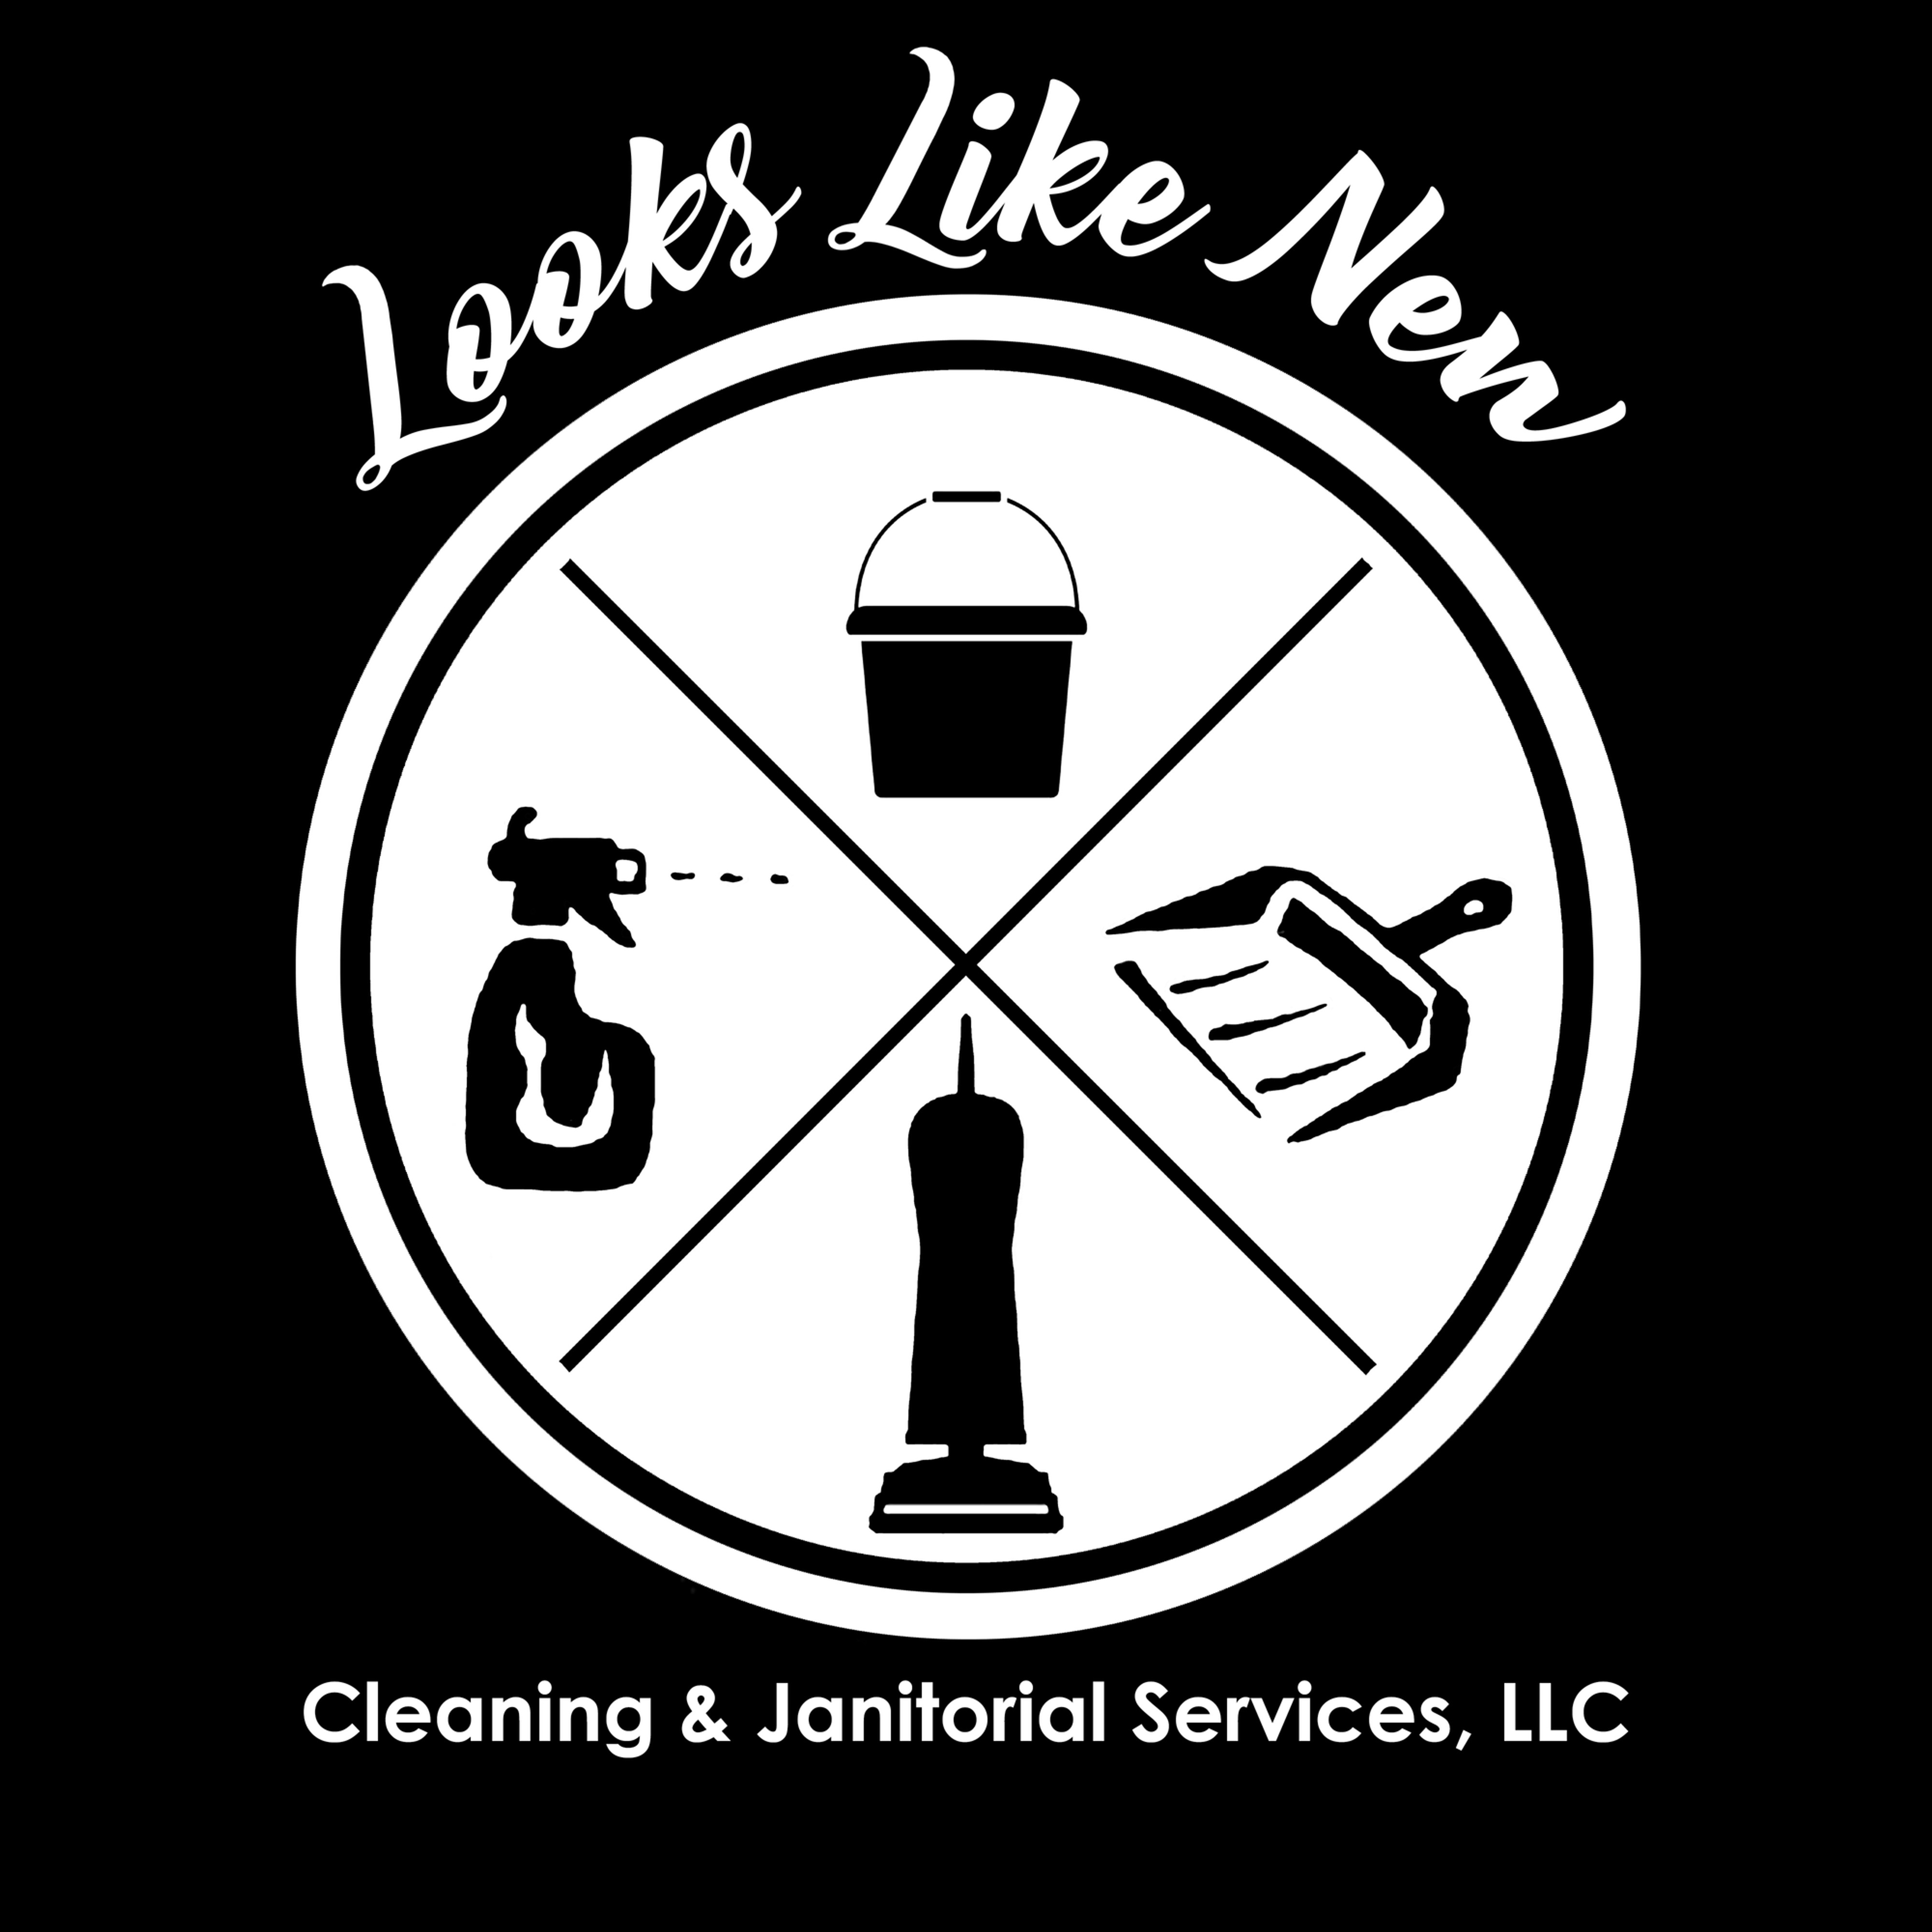 Commercial Janitorial Services Consult